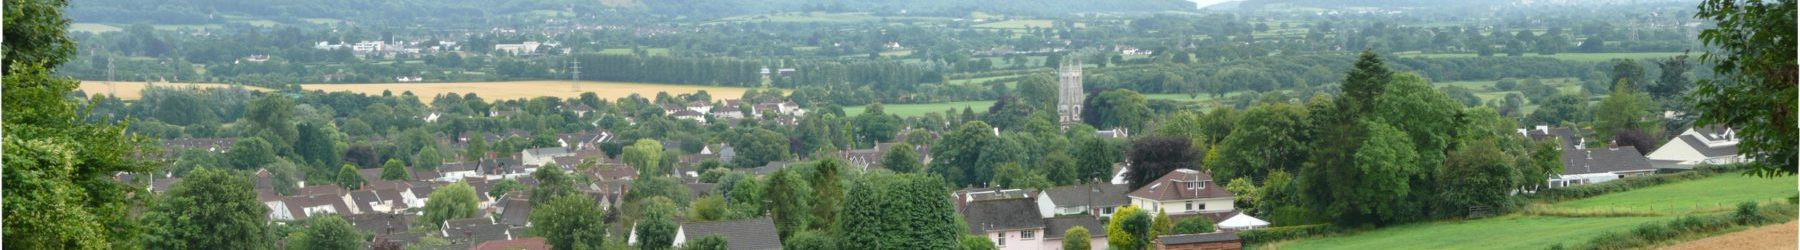 view-of-wrington